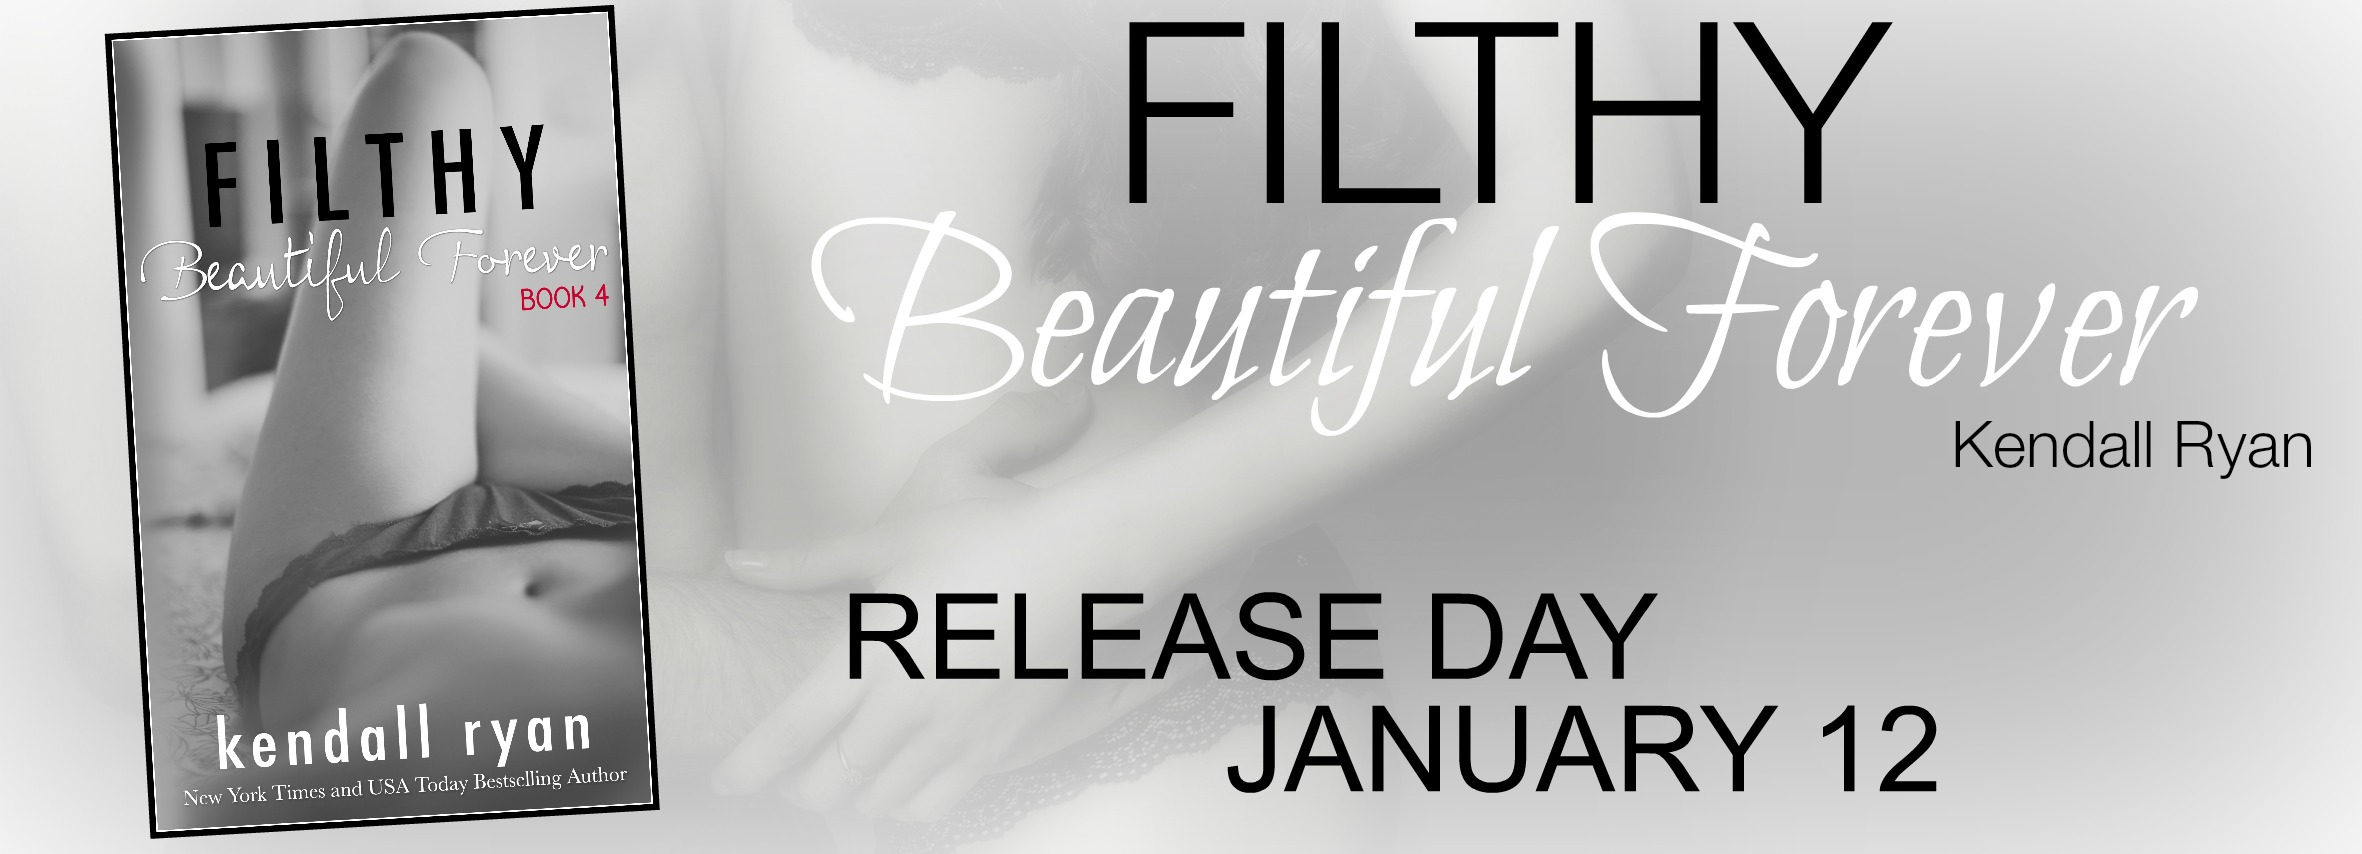 RELEASE DAY LAUNCH: Filthy Beautiful Forever by Kendall Ryan